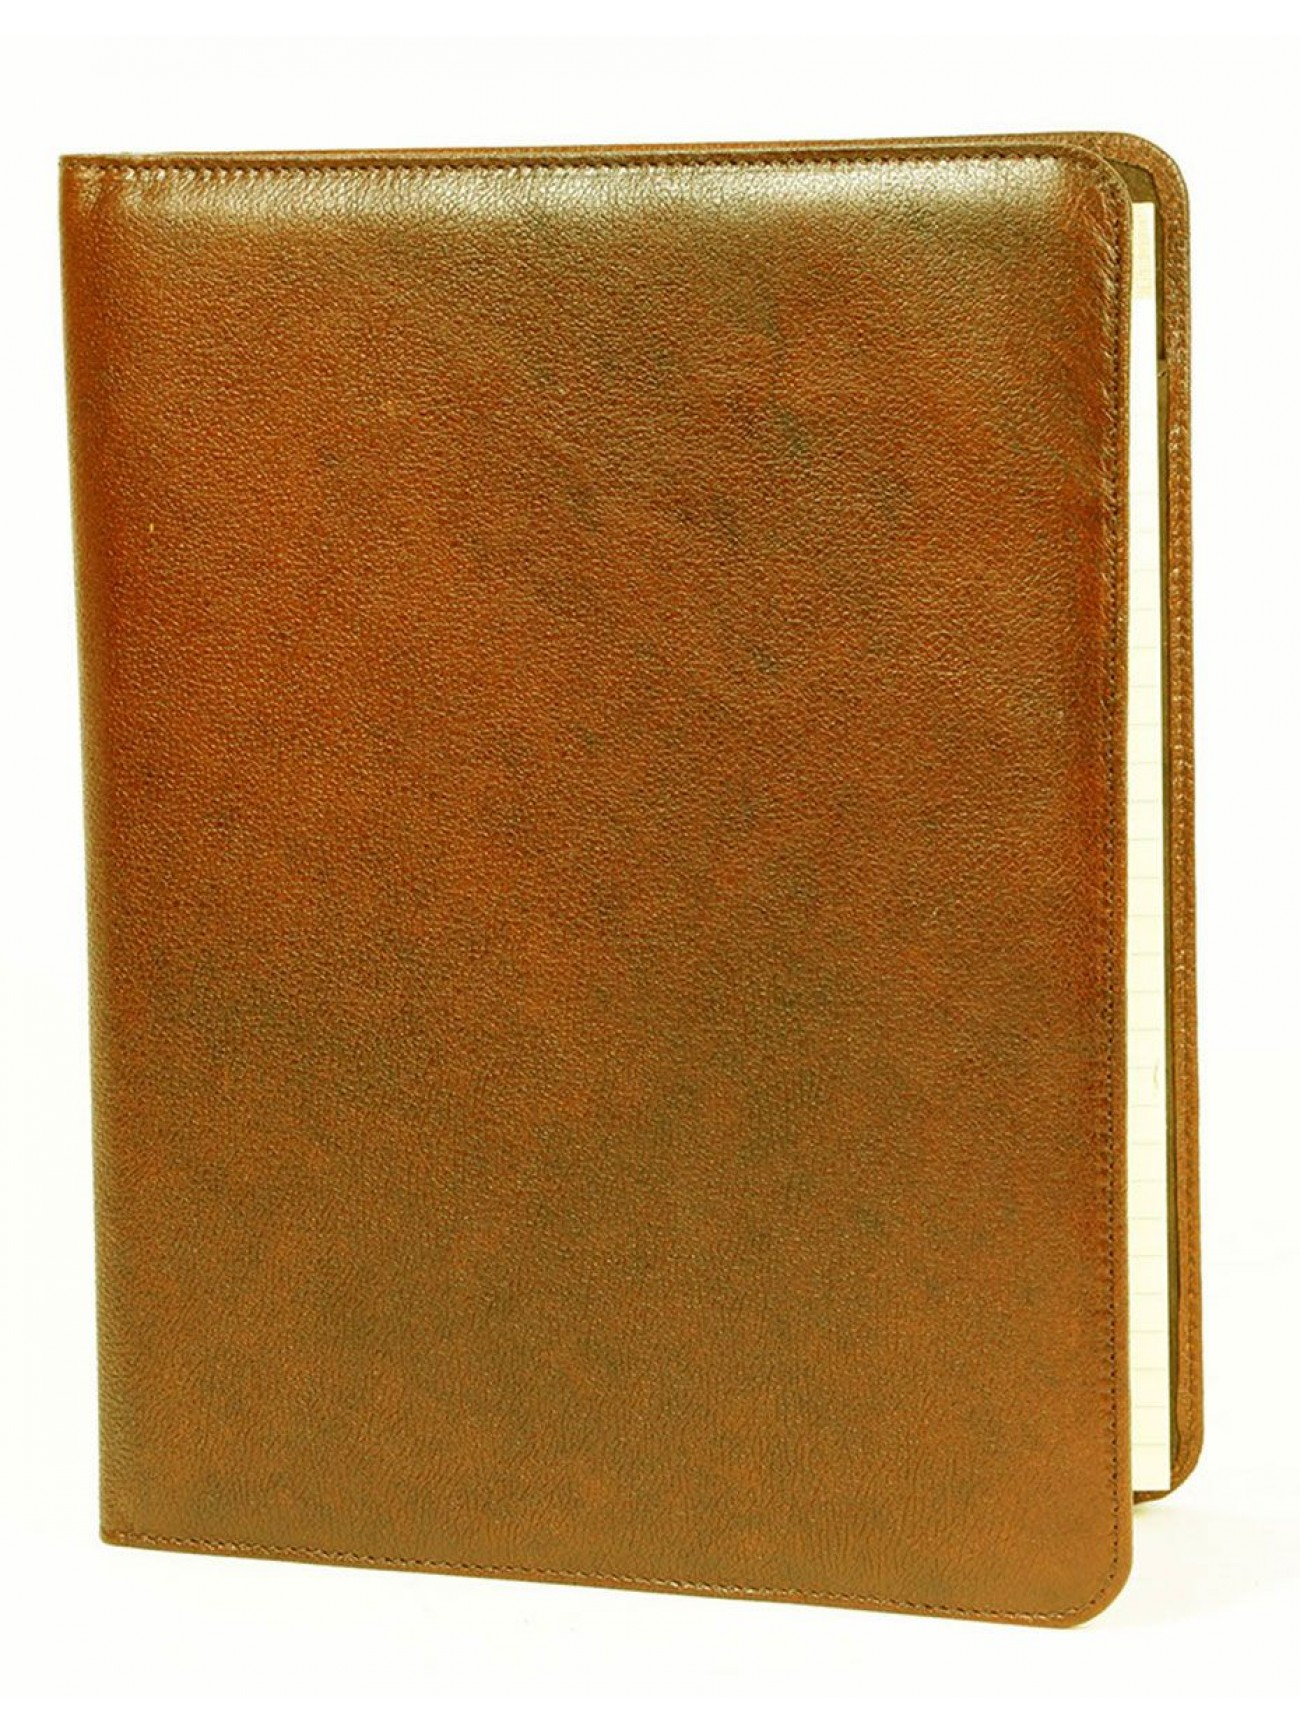 leather writing pad Executive bonded leather writing padfolio with a document flap and multiple pockets includes an 8 1/2 x 11 letter size writing pad.